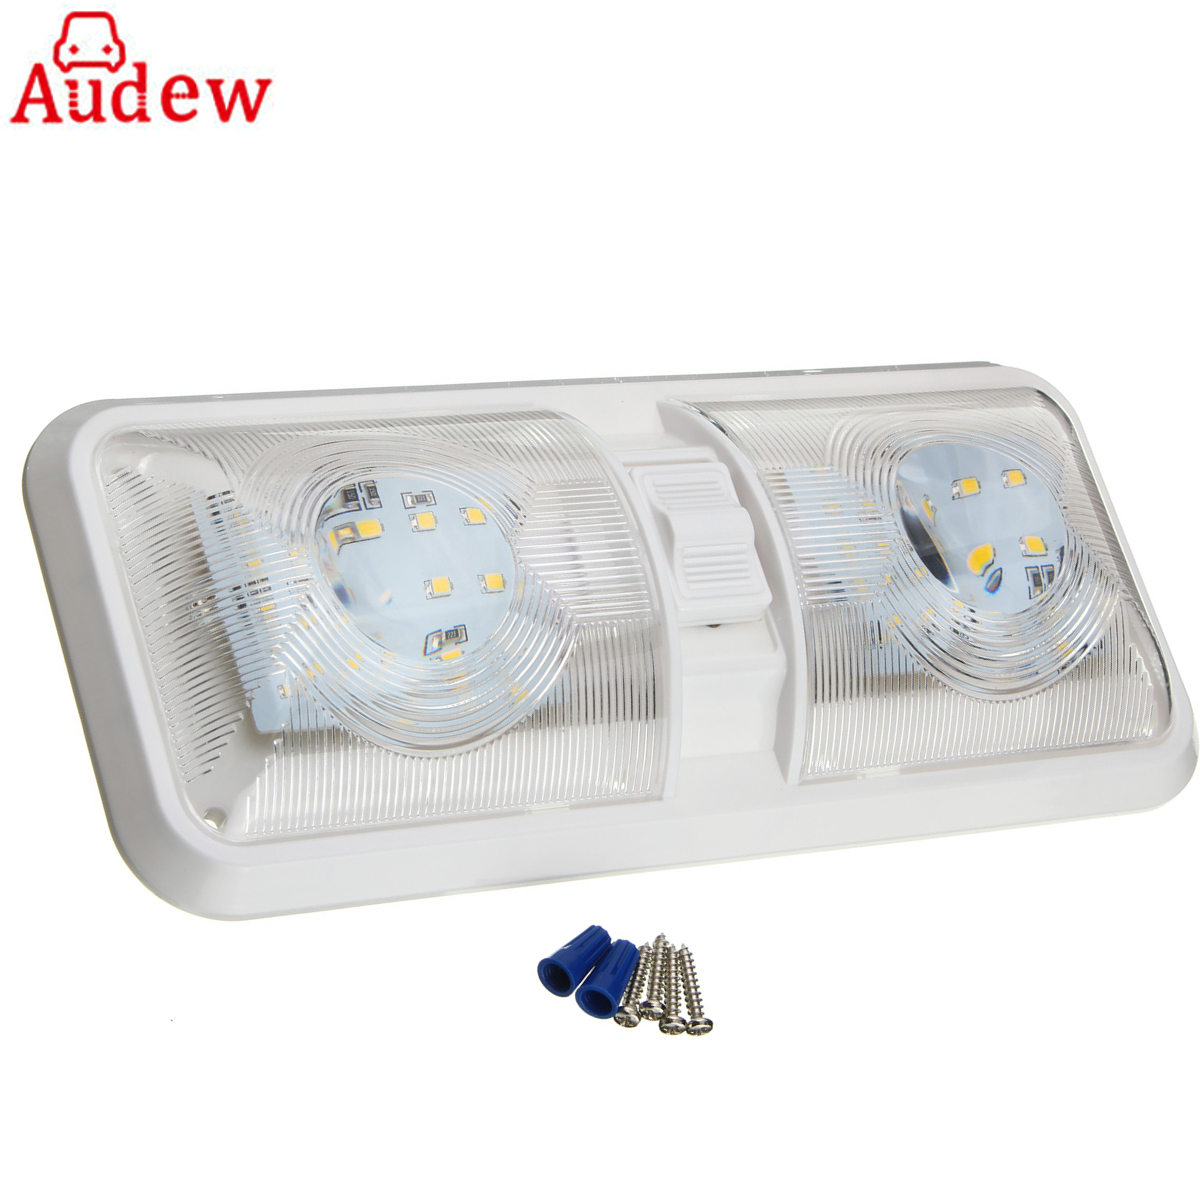 1Pcs Car Dome Light 12V 48 LED Interior Roof Ceiling Reading Lamp For RV Boat For Camper Trailer Plastic White antari z 800 ii page 5